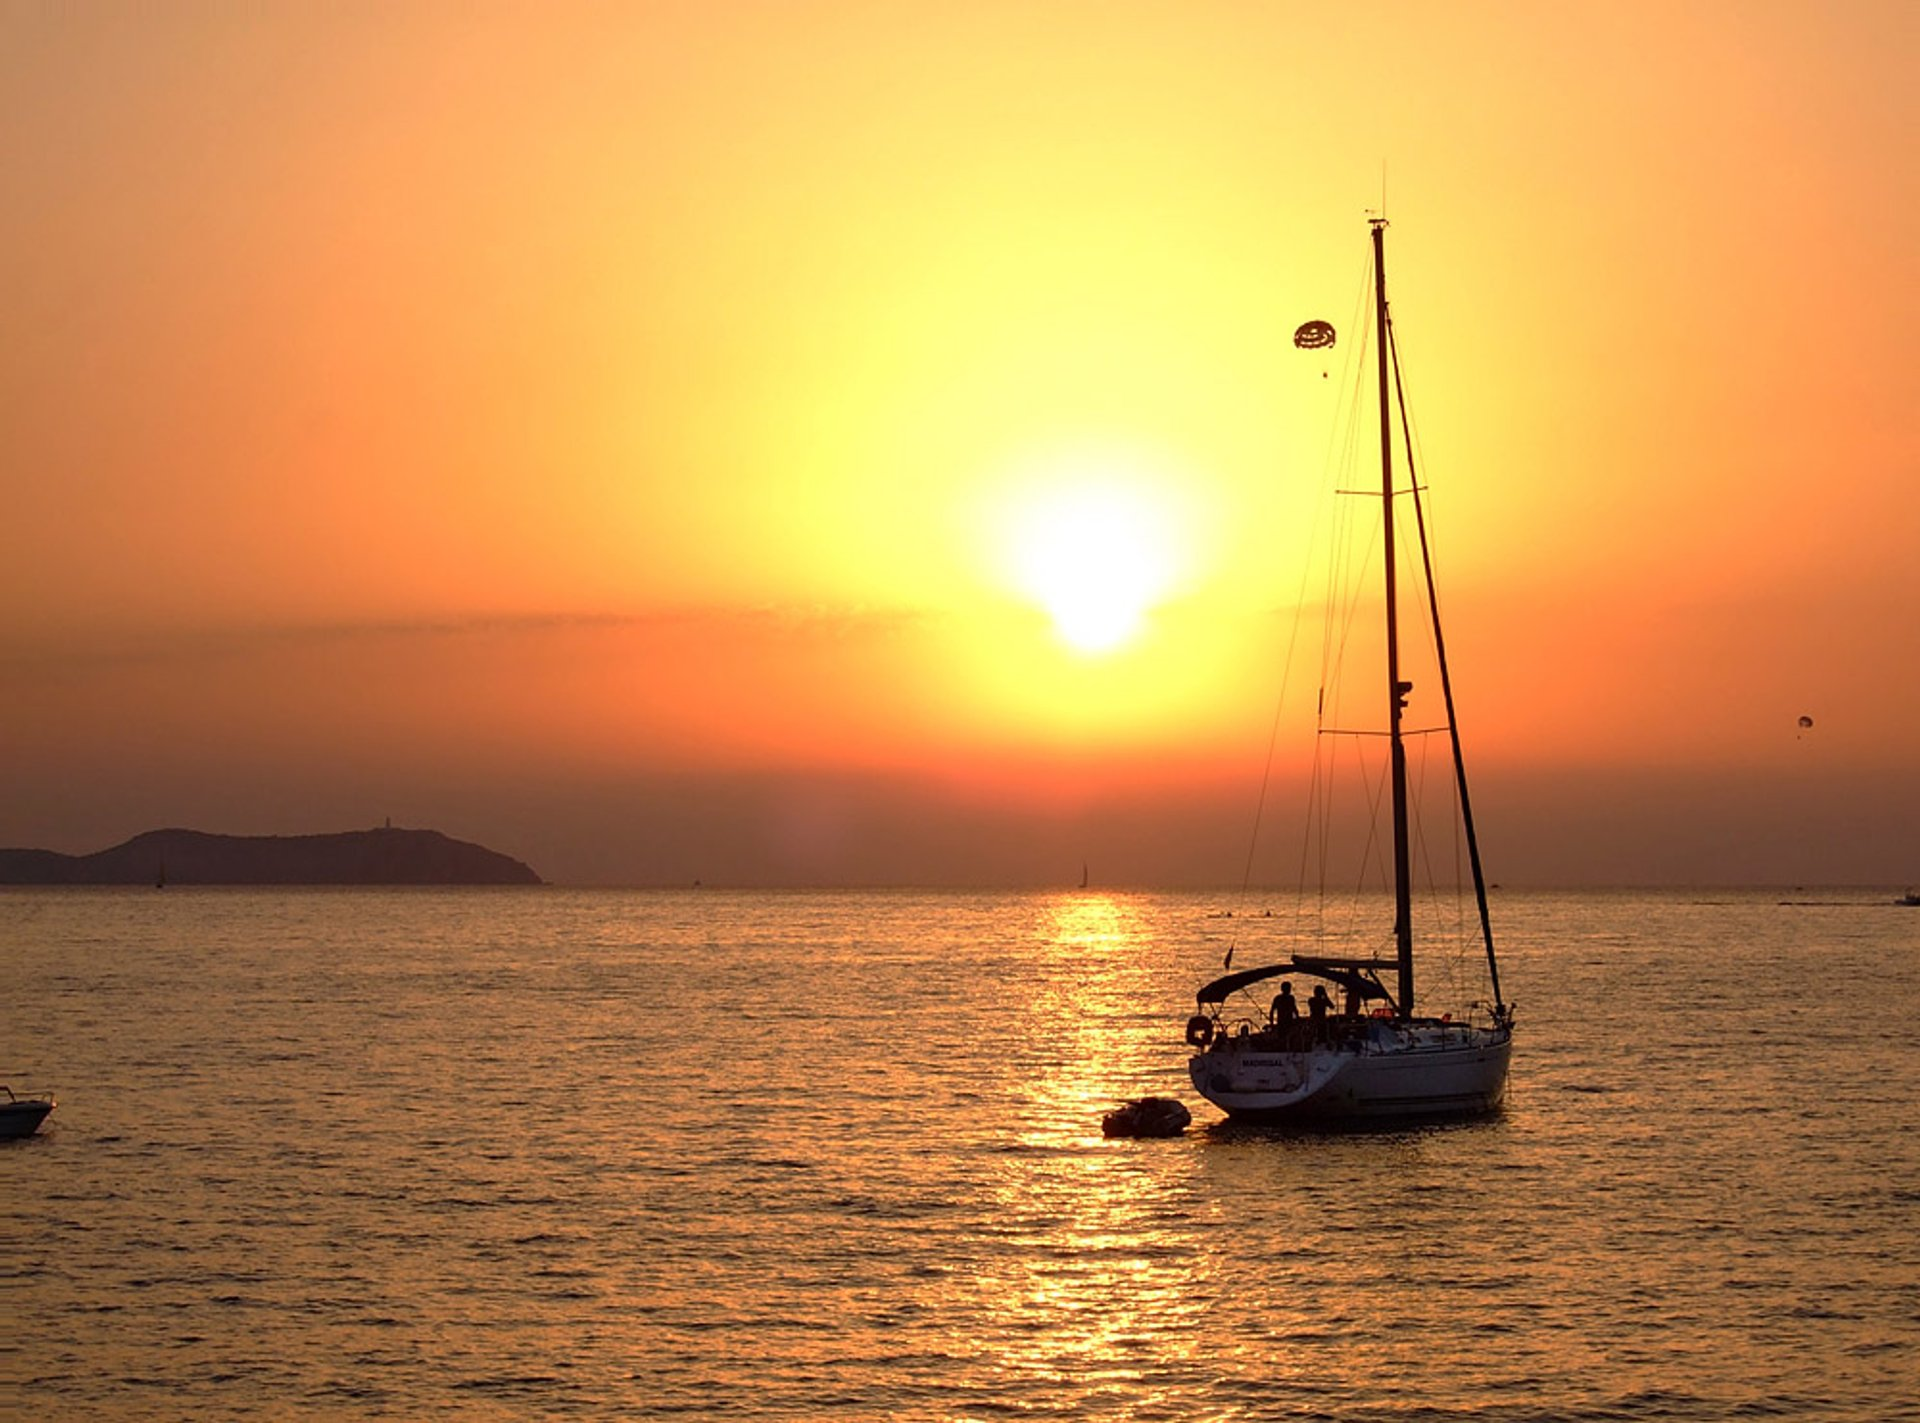 Sunset from Cafe del Mar, Sant Antoni de Portmany, Illes Balears, Spain 2020